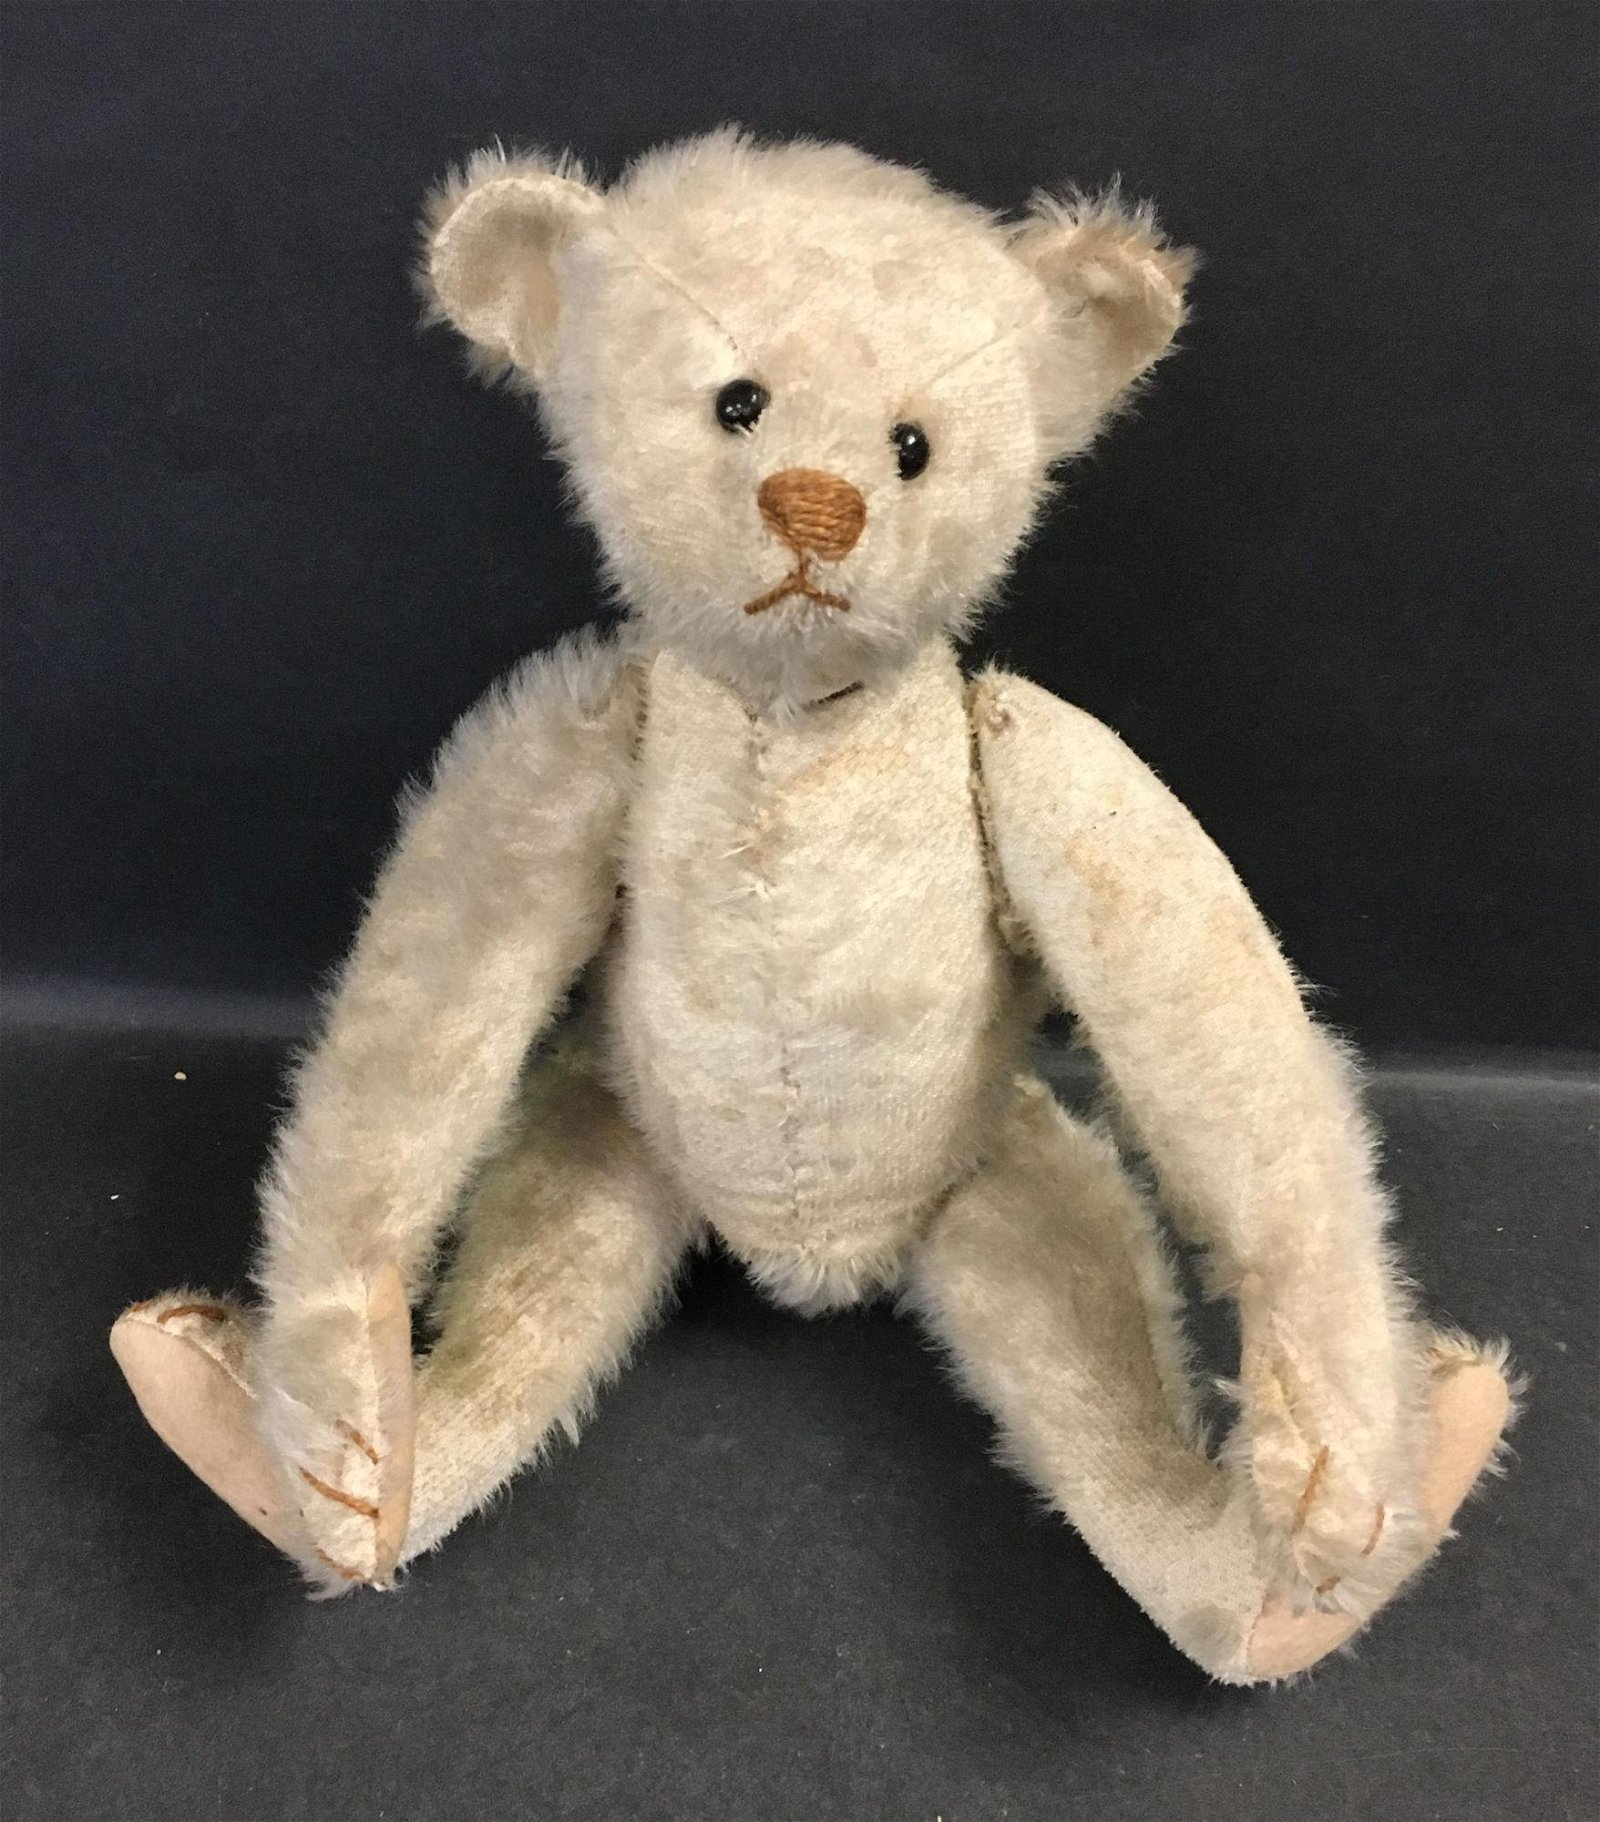 EARLY STEIFF WHITE MOHAIR TEDDY BEAR. DISK JOINTED AT